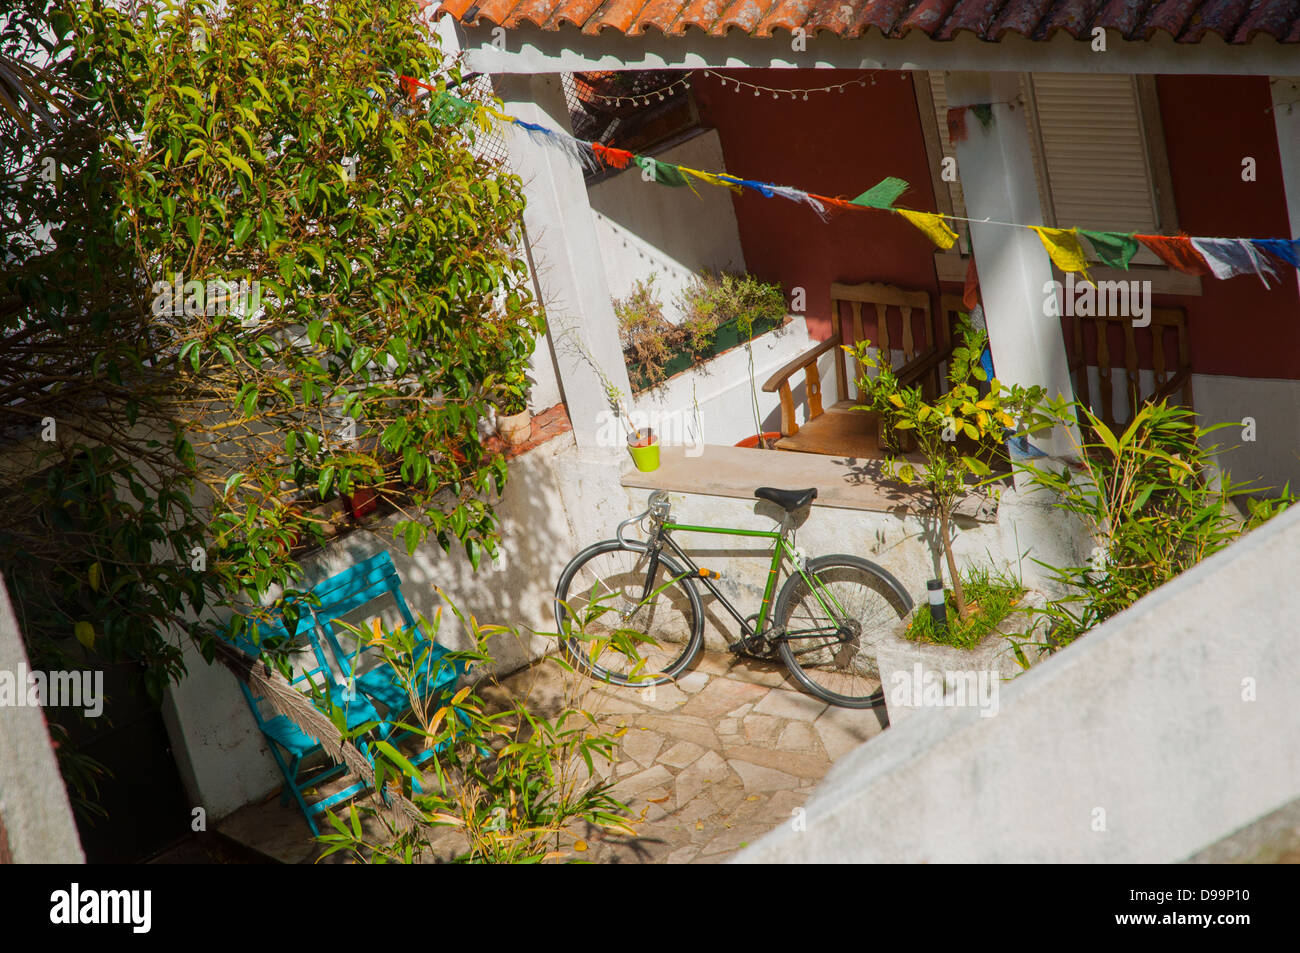 Patio with bicycle and flags Stock Photo: 57377852 - Alamy